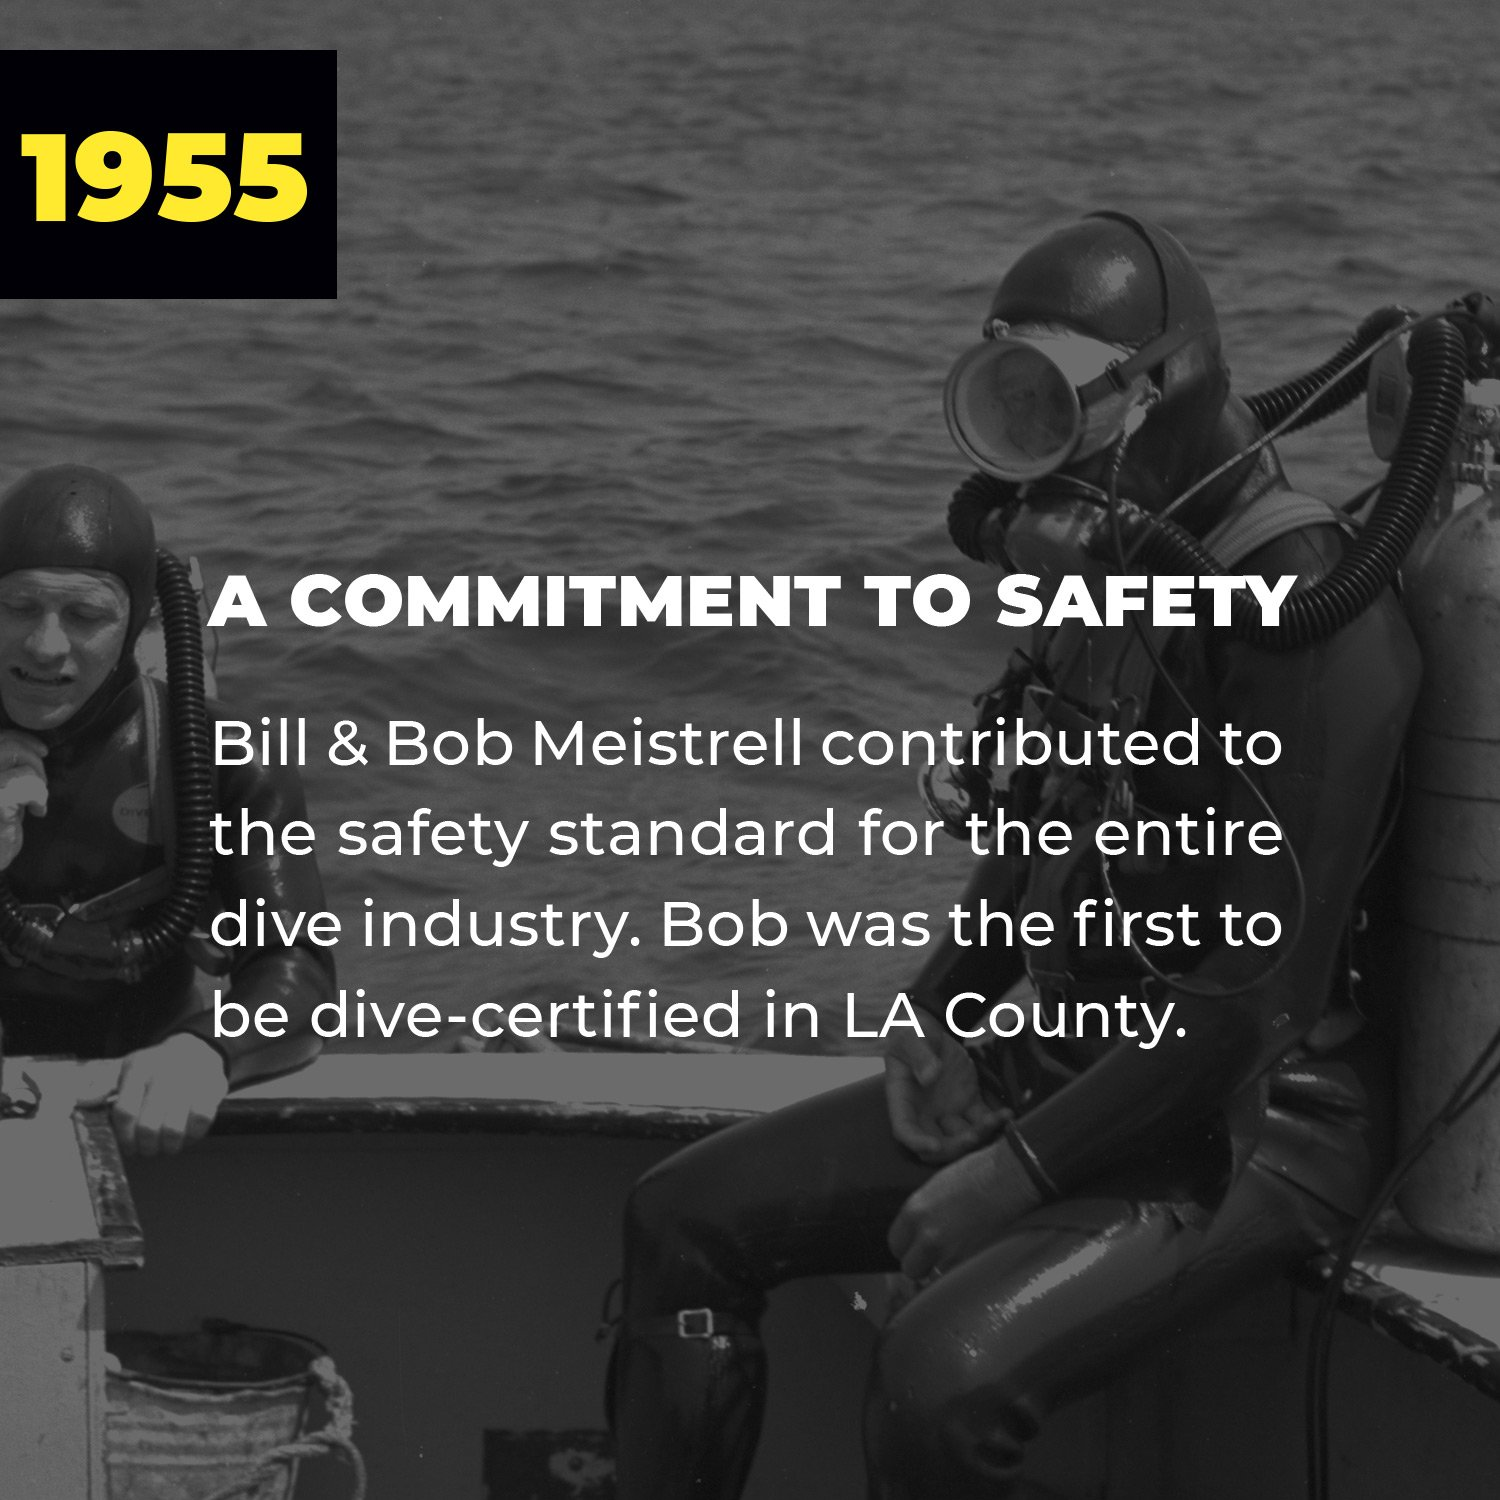 A Commitment to Safety | Bill & Bob Meistrell contributed to the safety standard for the entire dive industry. Bob was the first to be dive-certified in LA County.